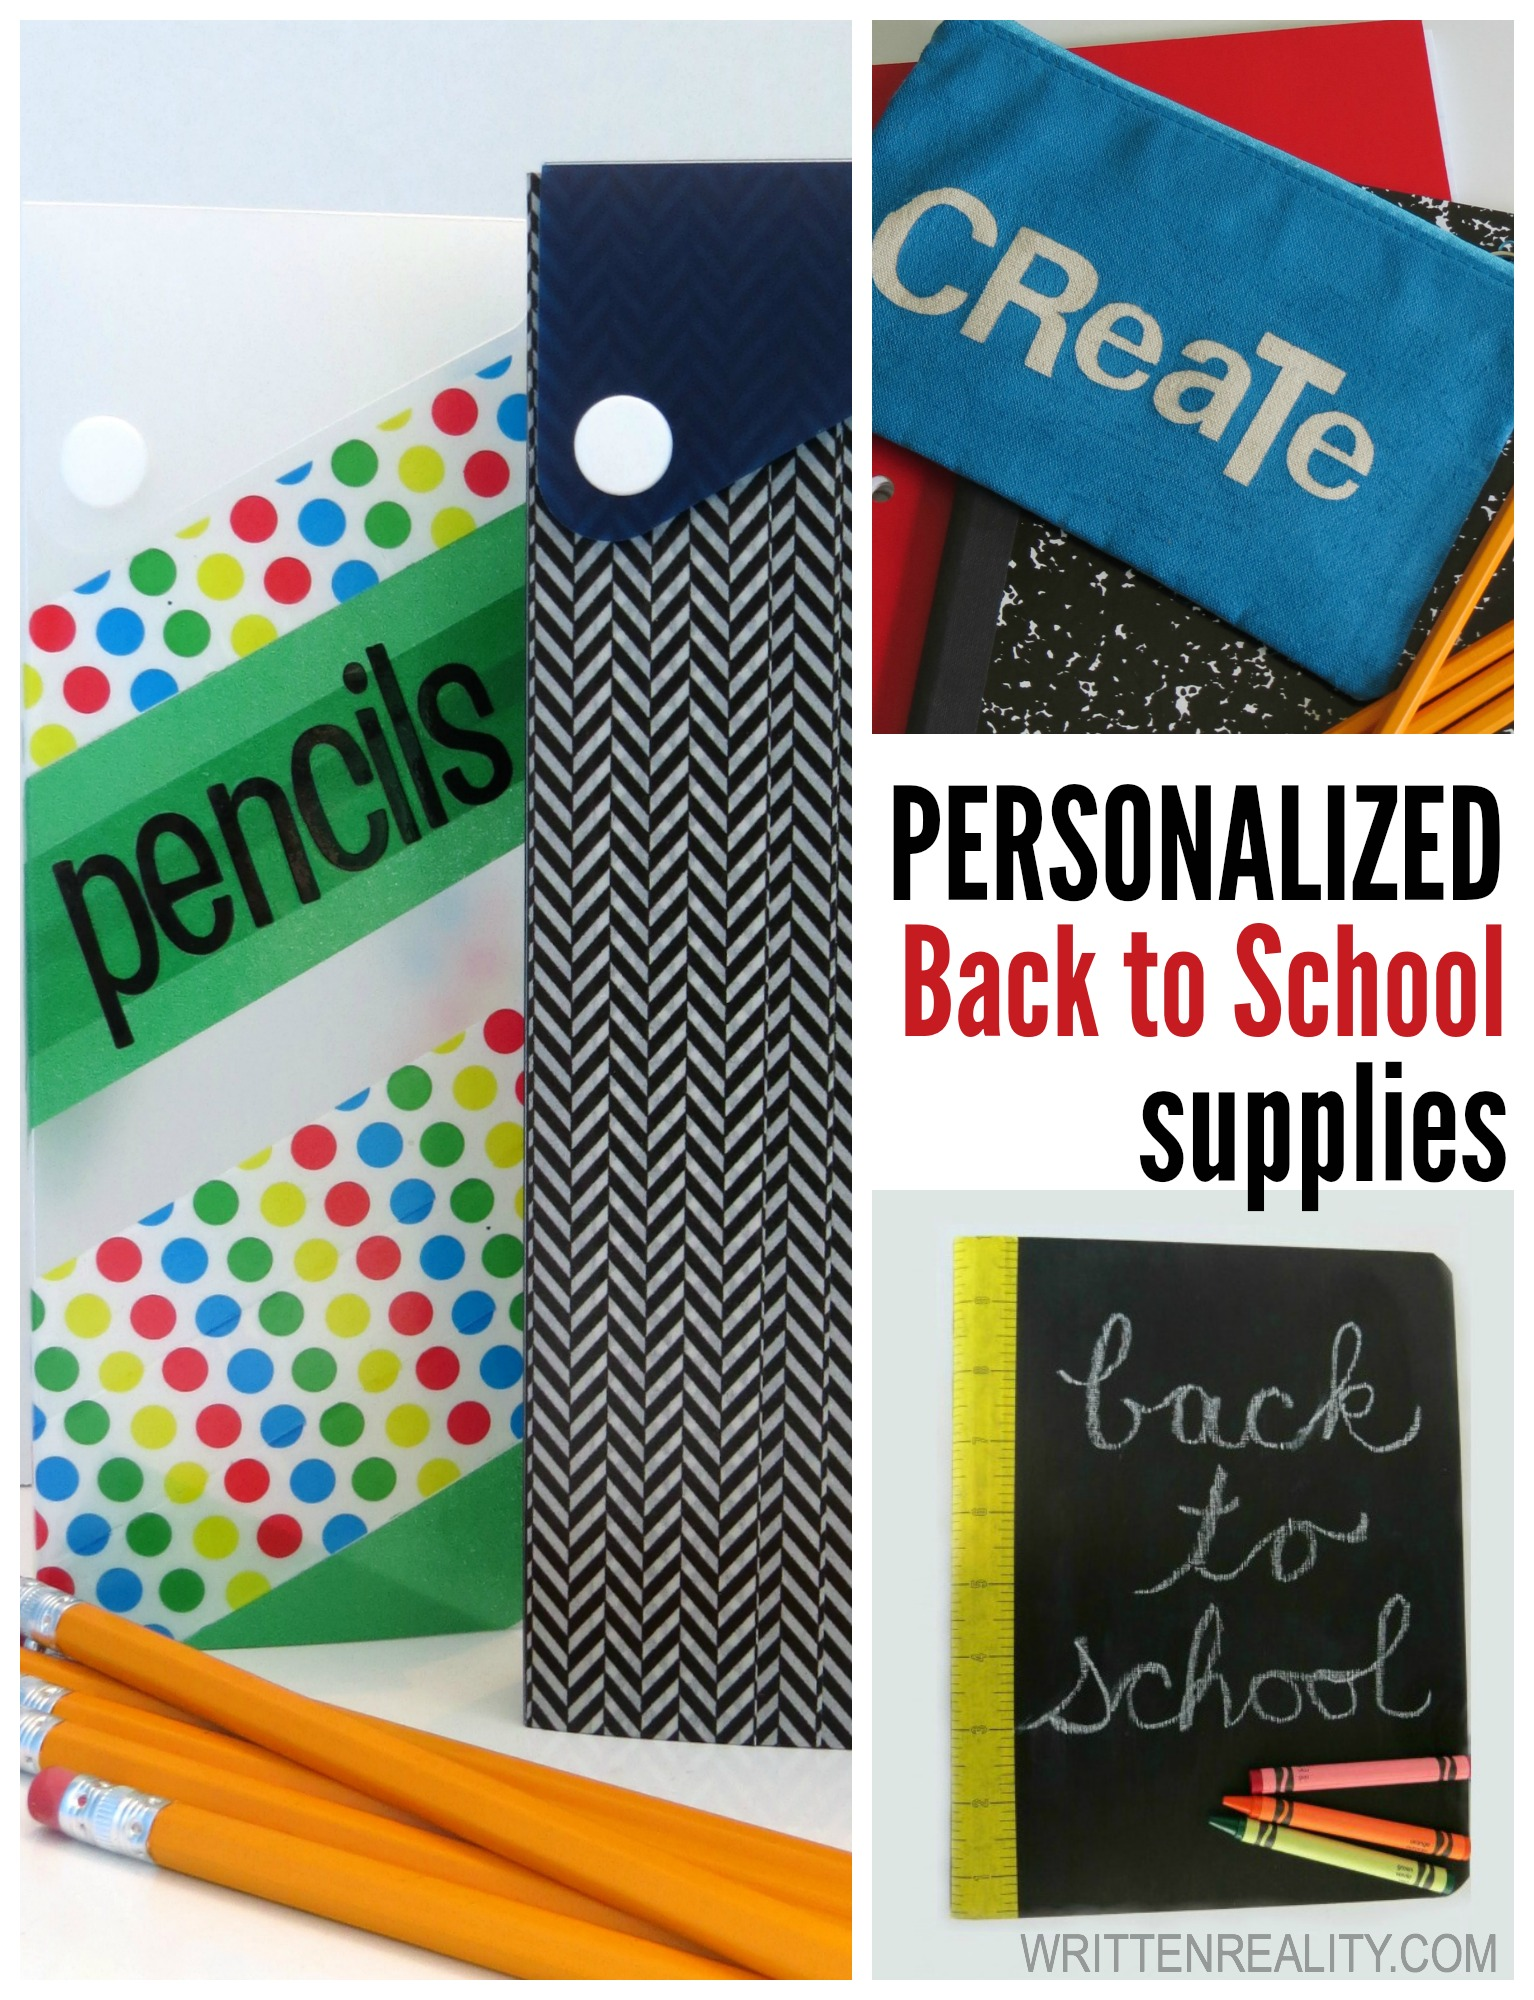 Personalized Back to School Supplies